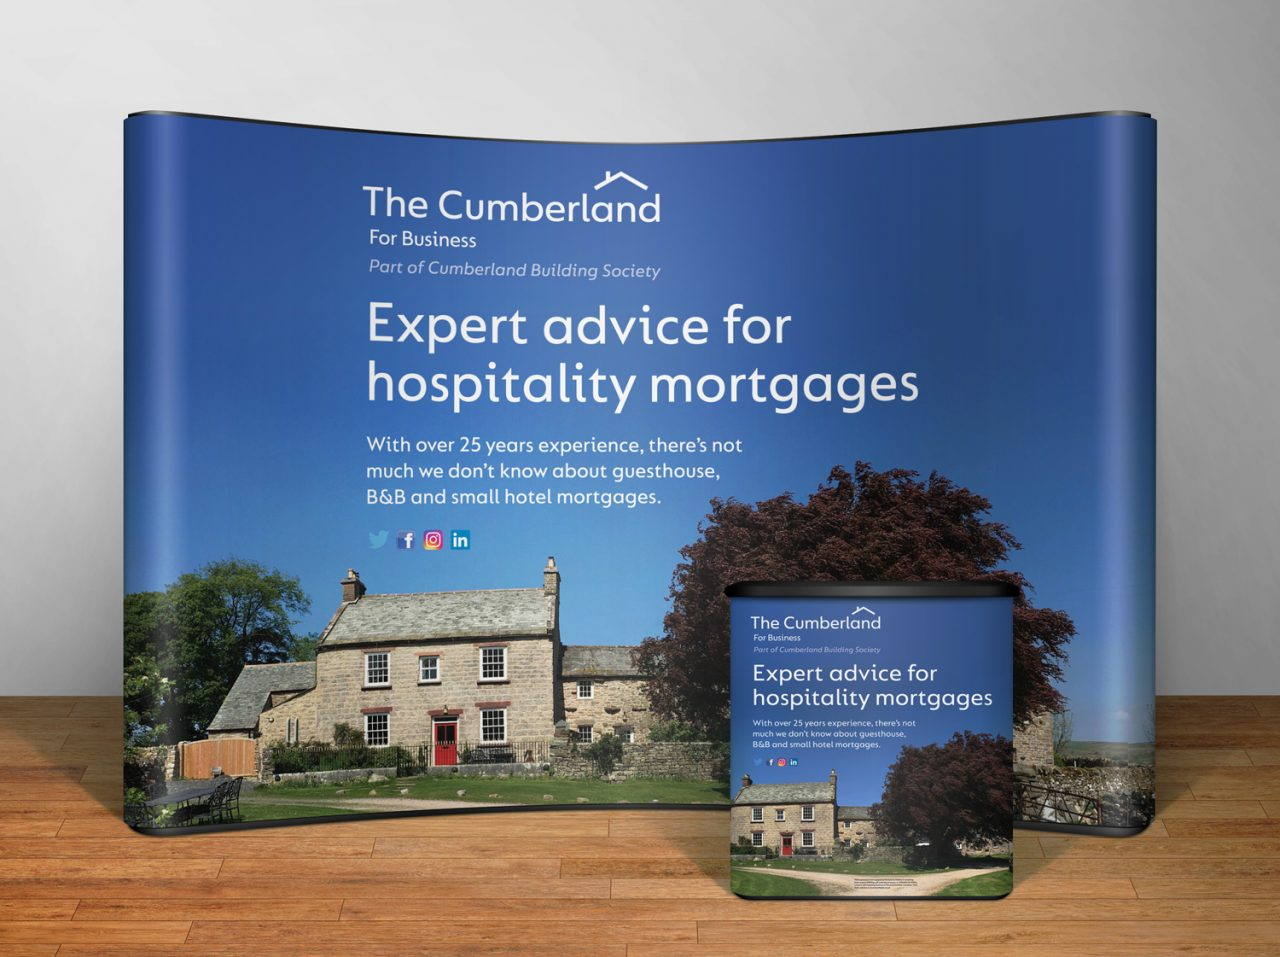 Exhibition display design The Cumberland for Business